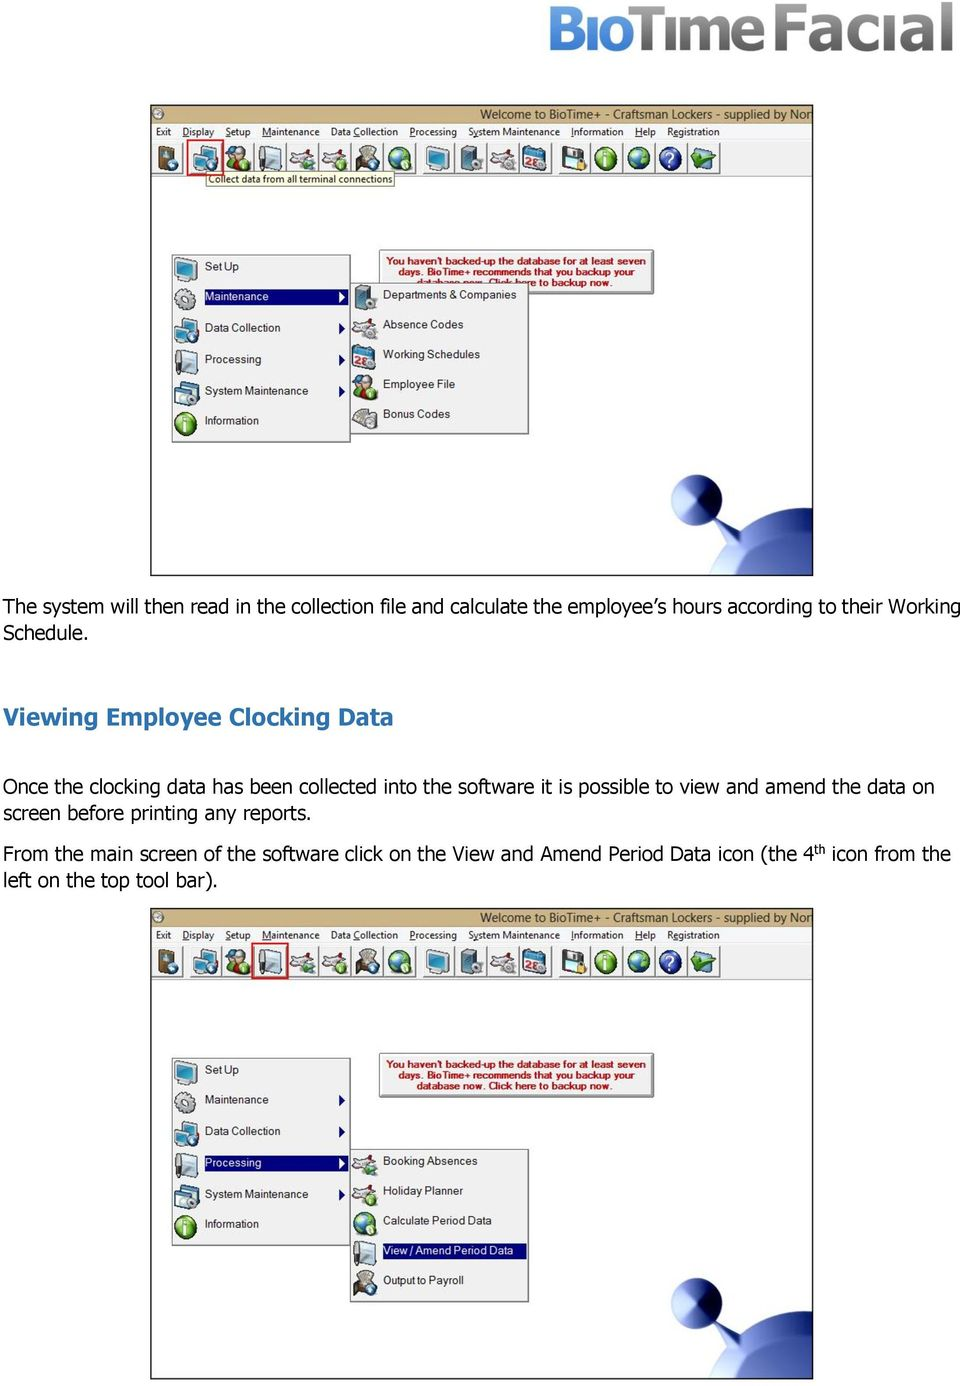 Viewing Employee Clocking Data Once the clocking data has been collected into the software it is possible